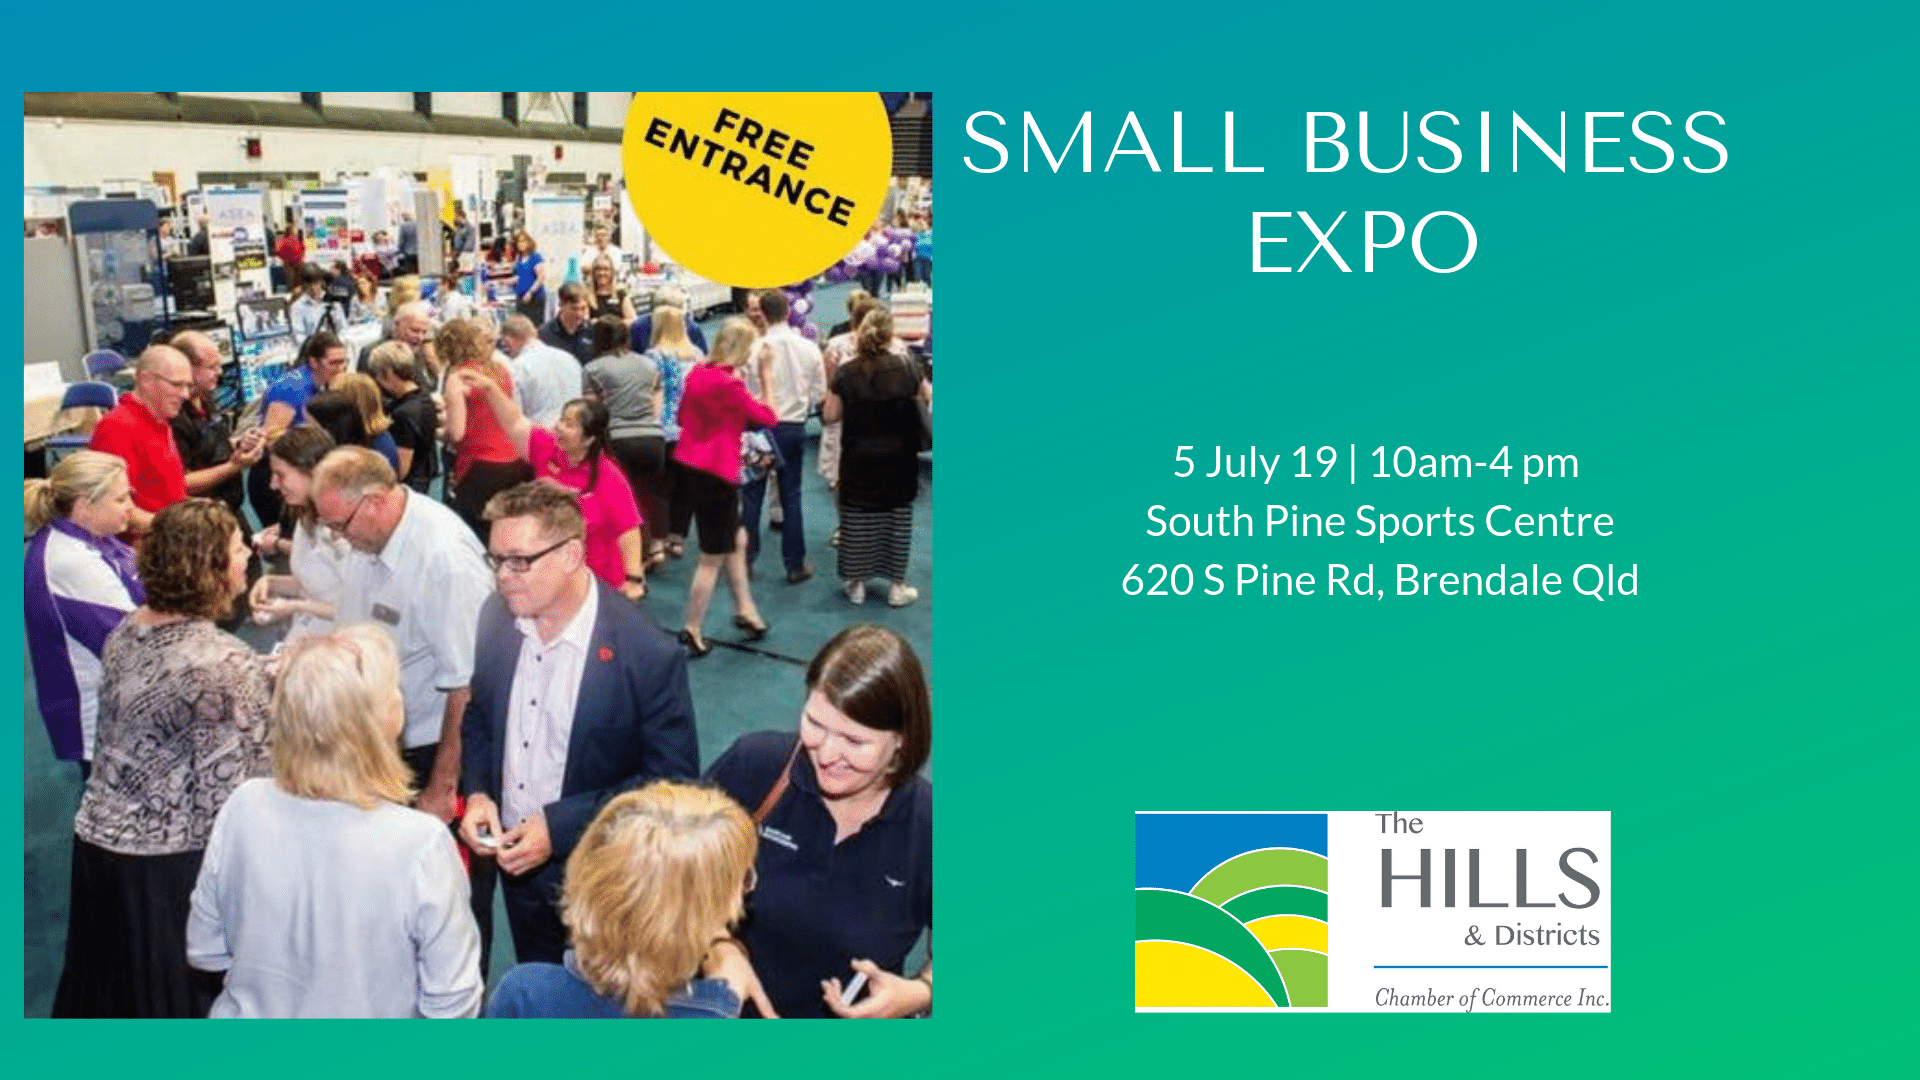 2019 Small Business Expo - Hills & Districts Chamber of